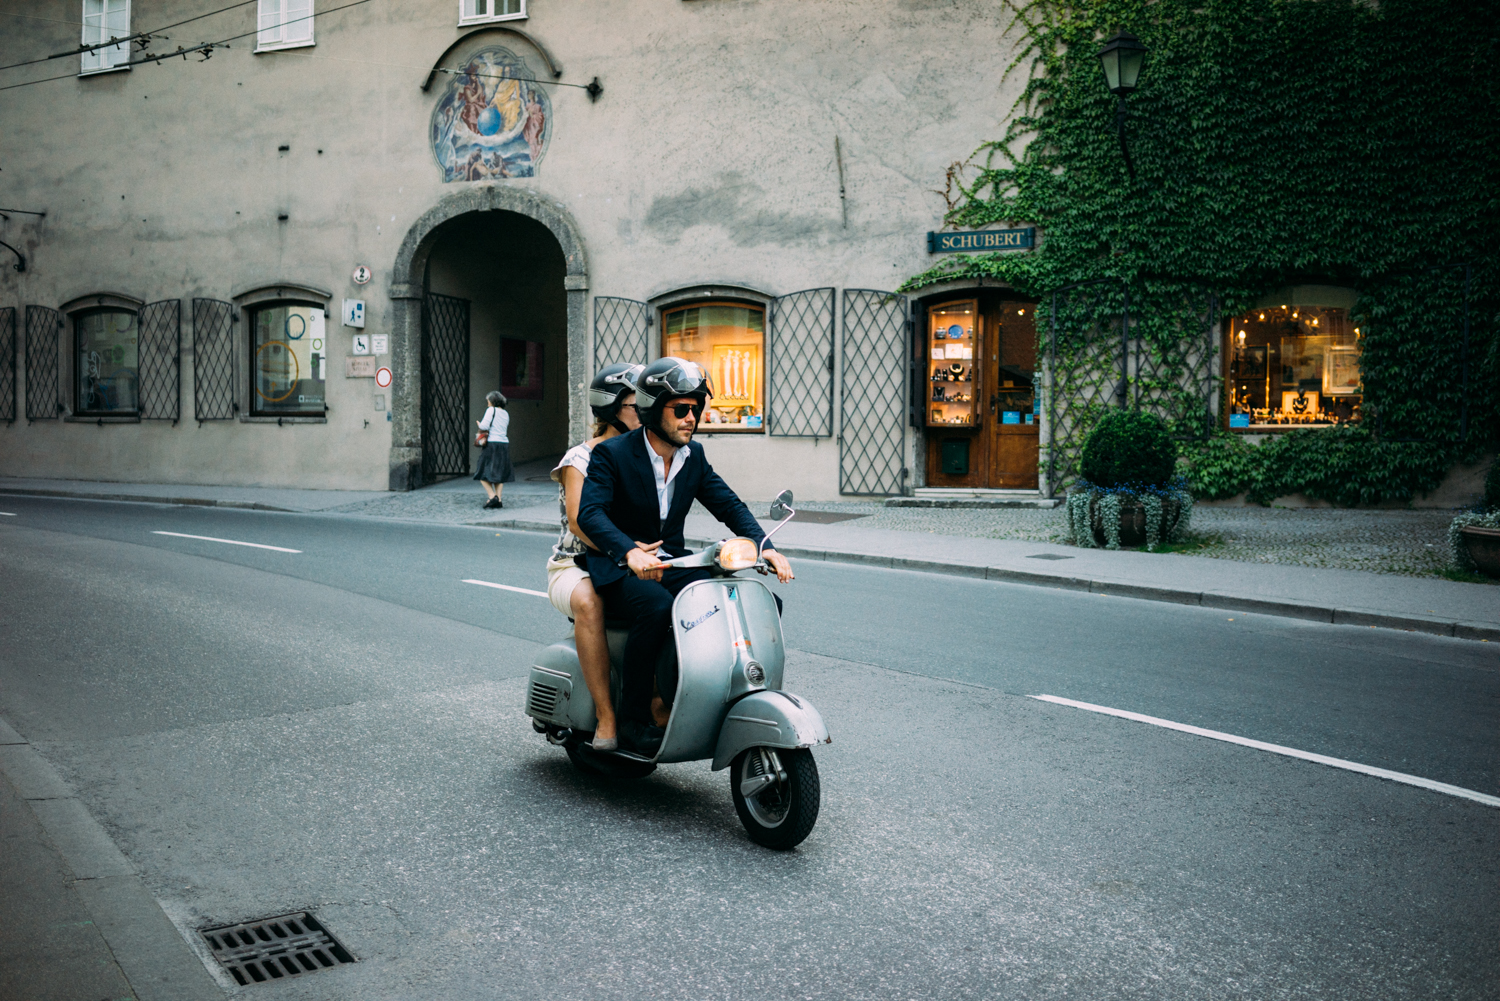 Looking slick on a moped.